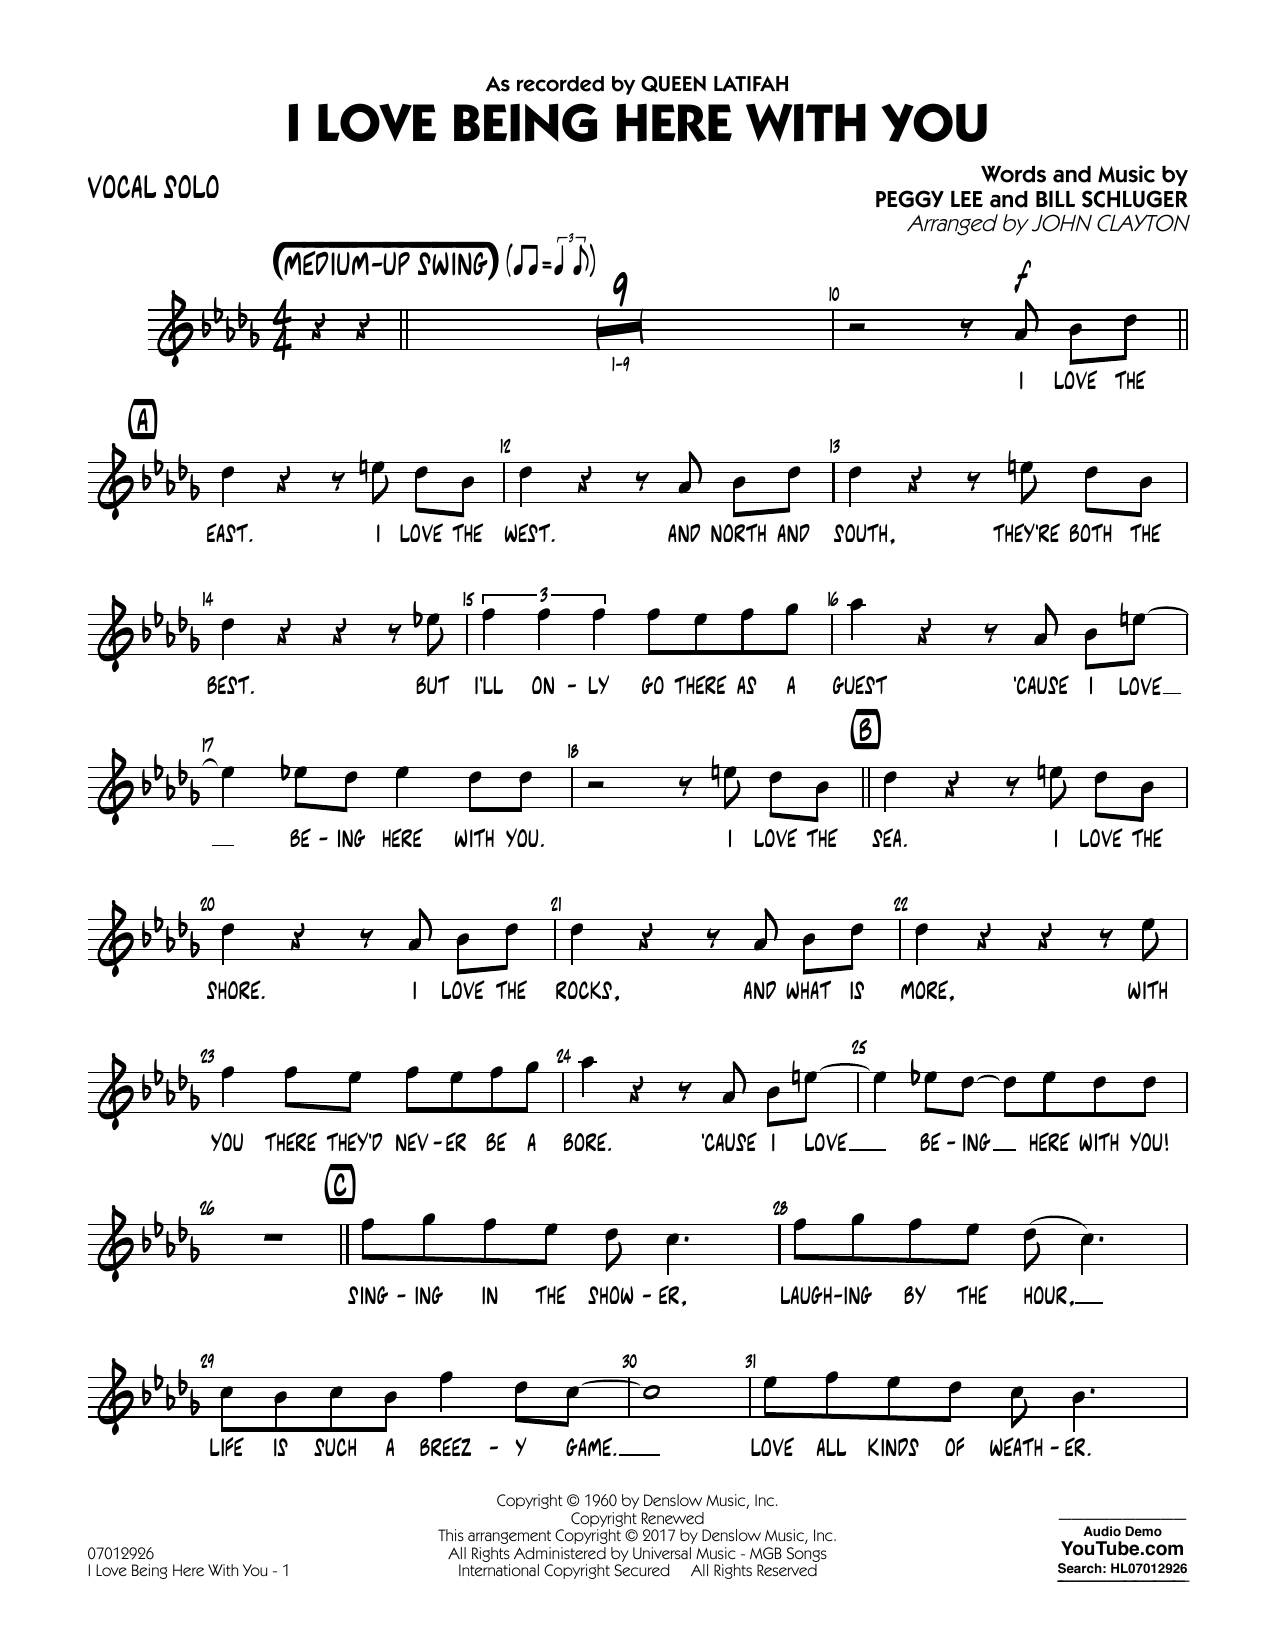 John Clayton I Love Being Here with You (Key: Db) - Vocal Solo sheet music notes and chords. Download Printable PDF.